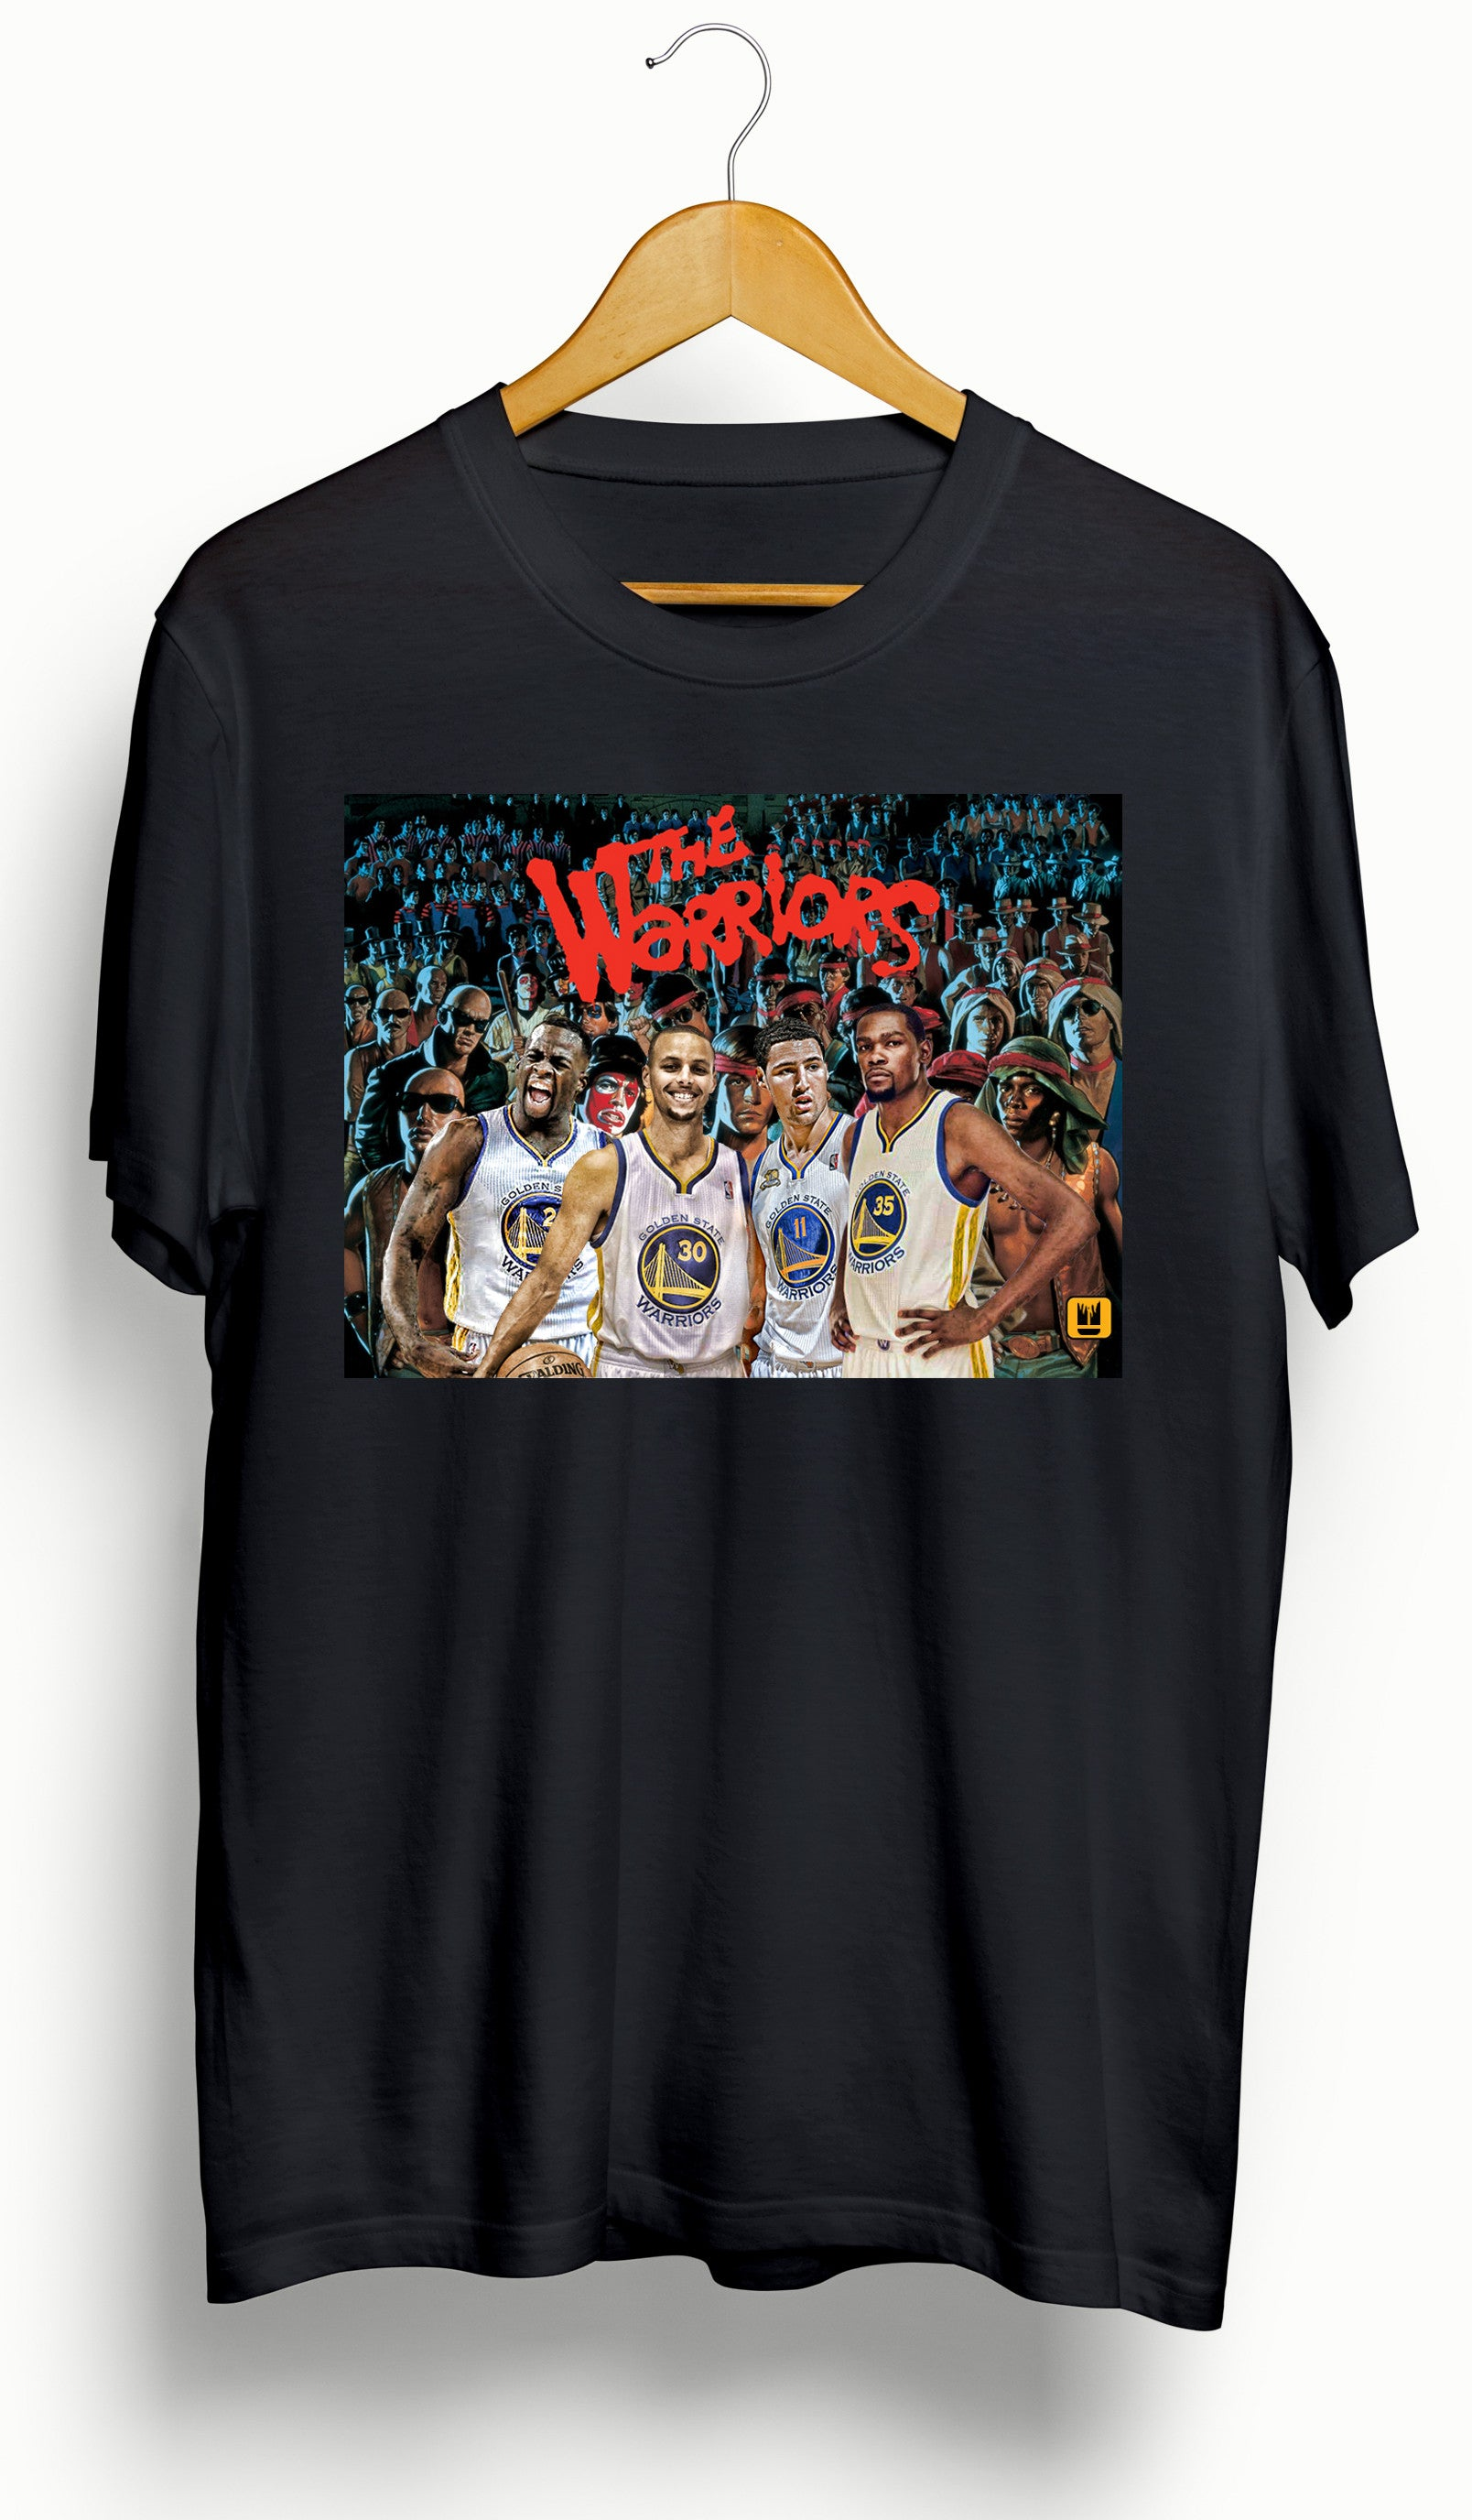 Golden State Warriors/The Warriors T-Shirt - Ourt